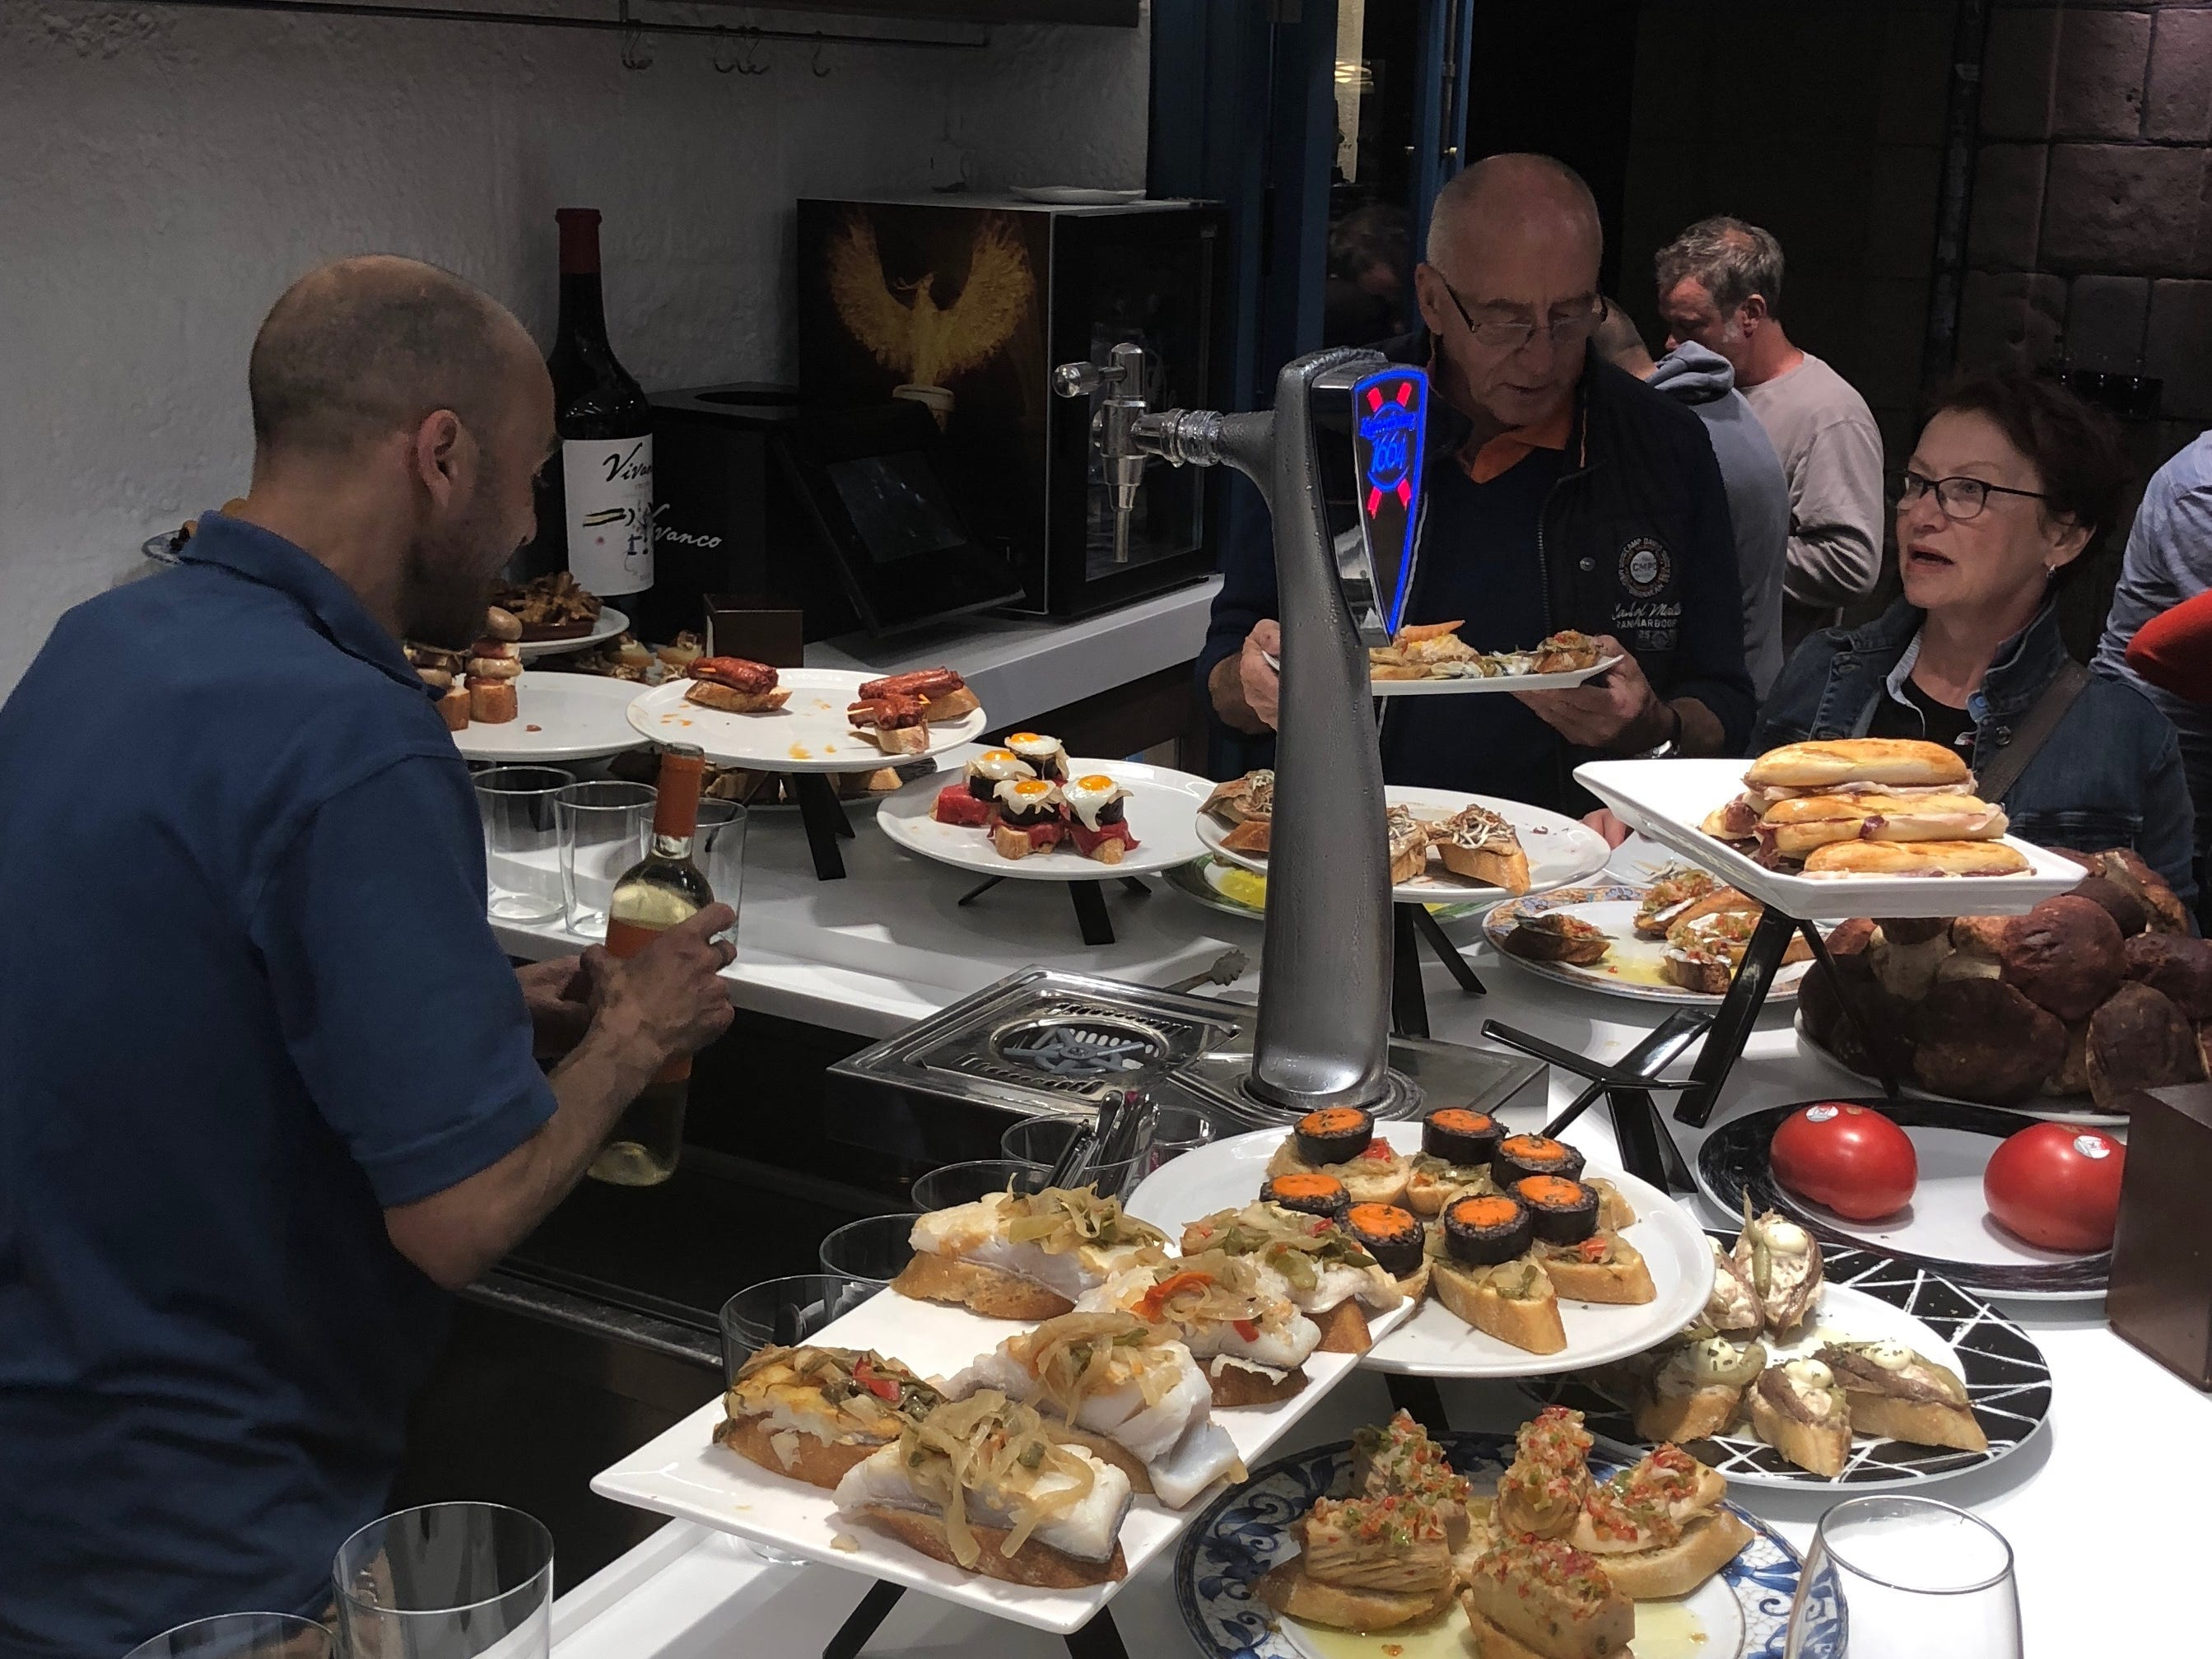 A collection of inventive pintxos in the Old Town section of San Sebastian, Spain. A pintxos crawl is a nightly occurrence here for residents and tourists alike